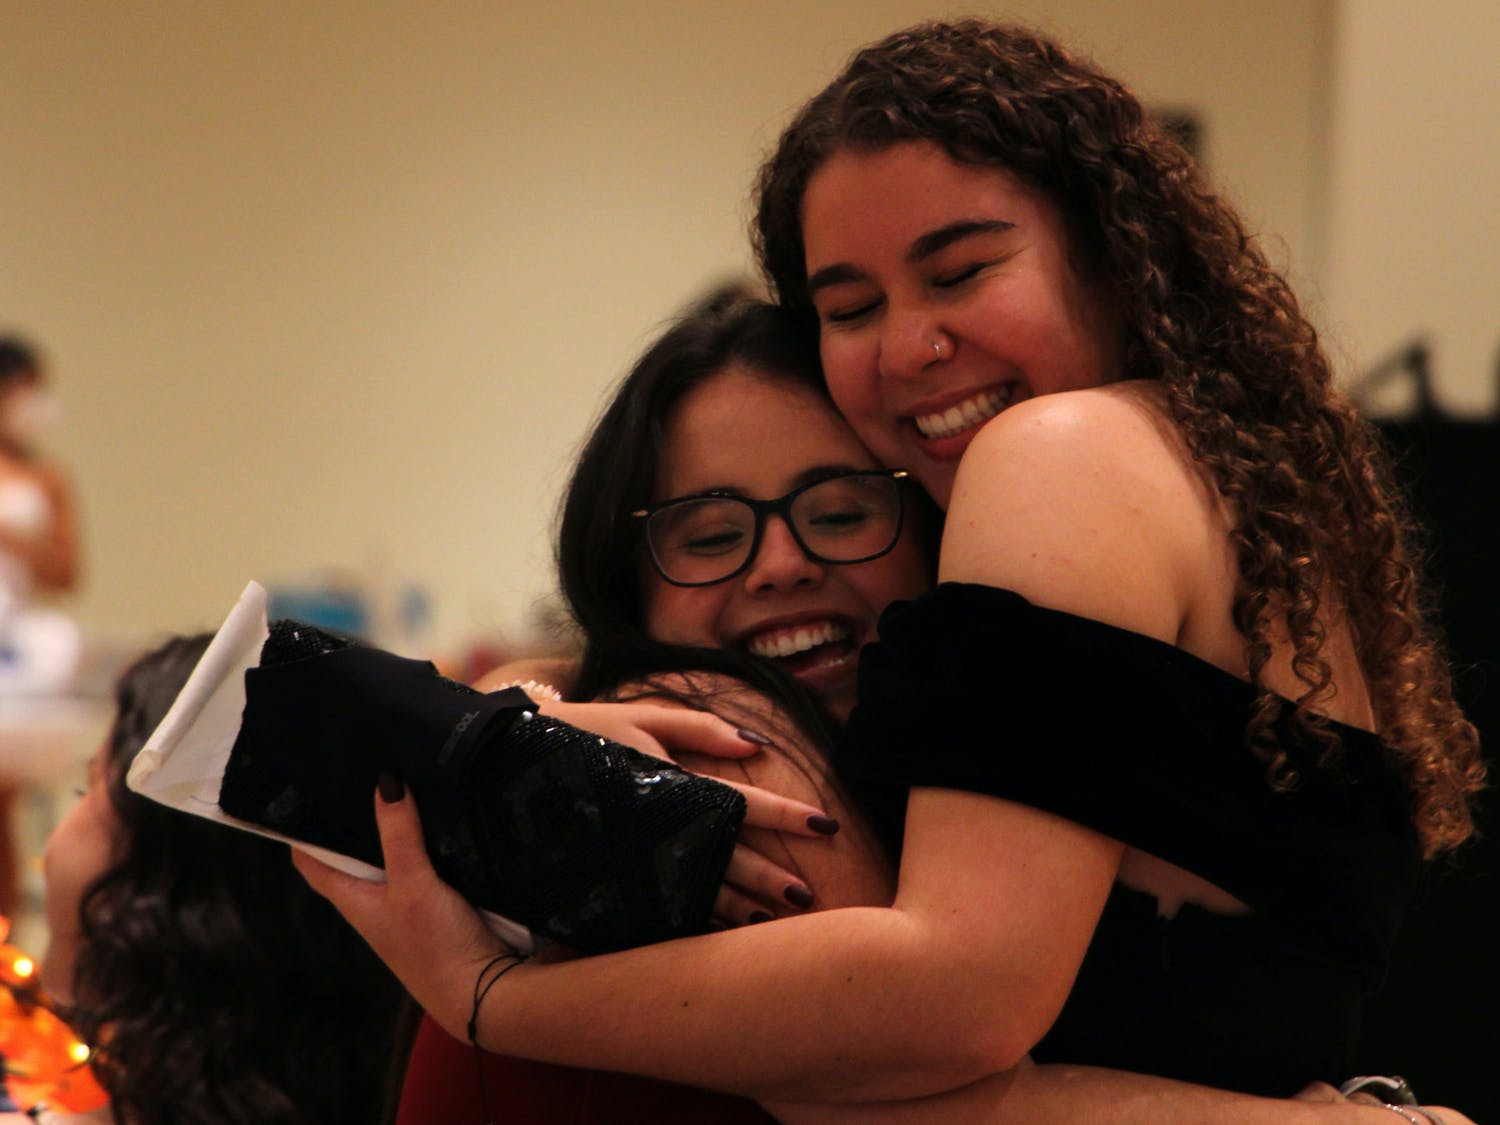 Daniella Duarte (left), 21, UF finance sophomore, receives a hug from her friend Gabriella Barreras (right), 20, UF advertising junior, during the masquerade ball in the Rion Ballroom at the Reitz Union on Thursday, Sept. 16, 2021.